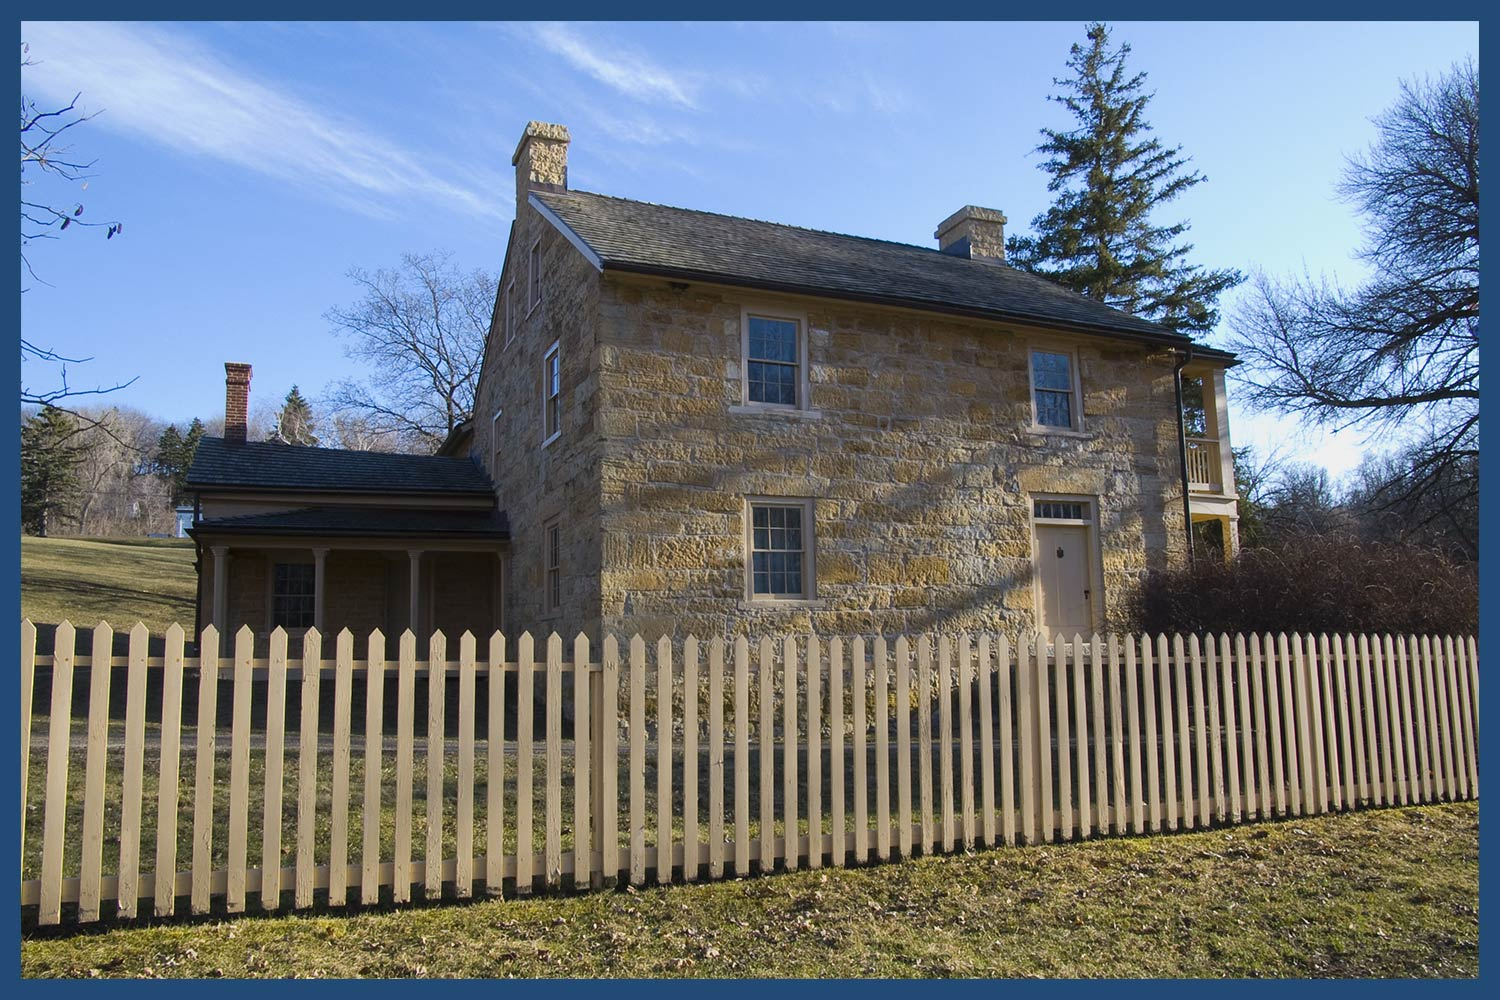 The Sibley House in Minnesota